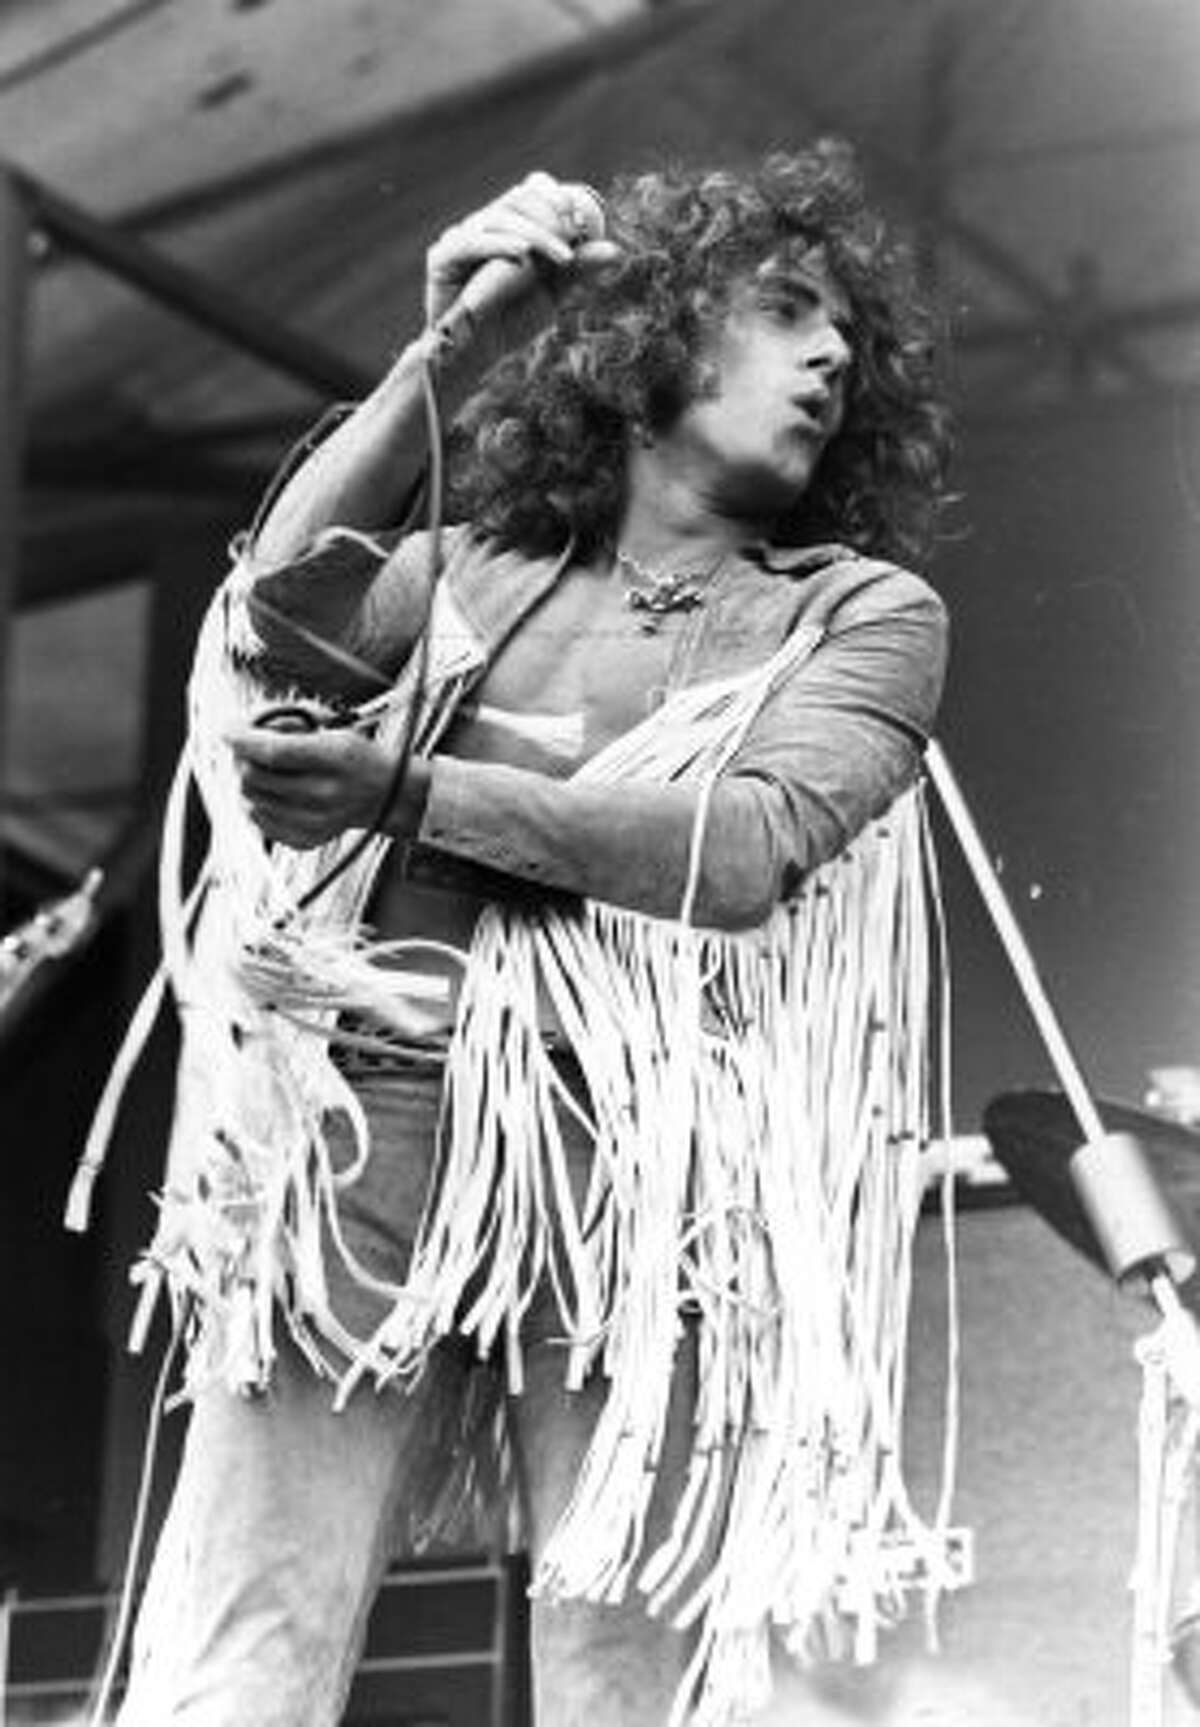 Daltrey was one of the three founding members of the The Who in the 1960s.